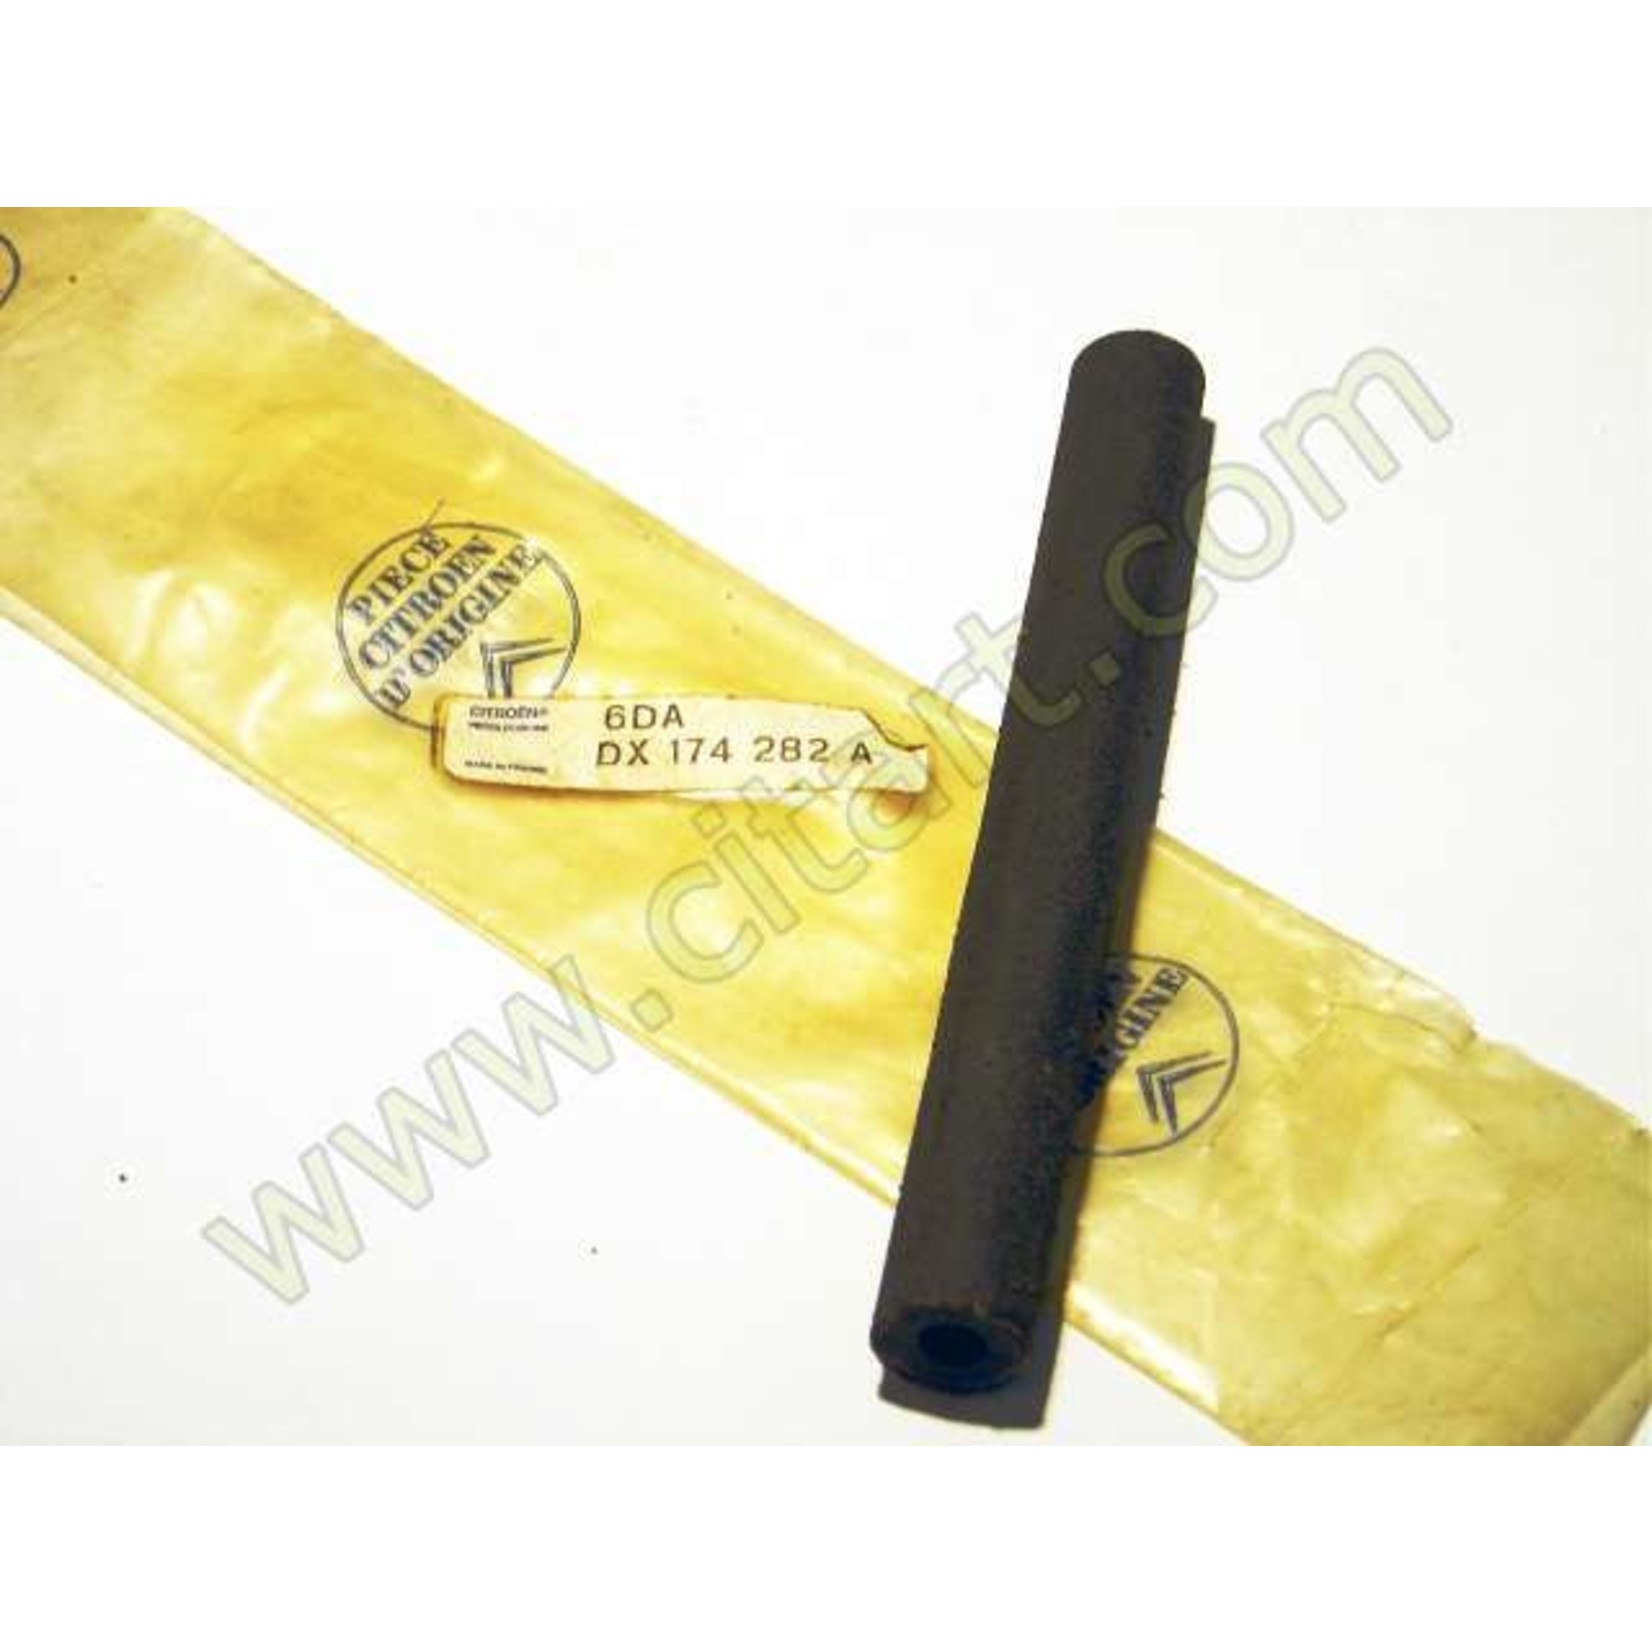 Flexible union for cylinder pipe l=157 Nr Org: DX174282A